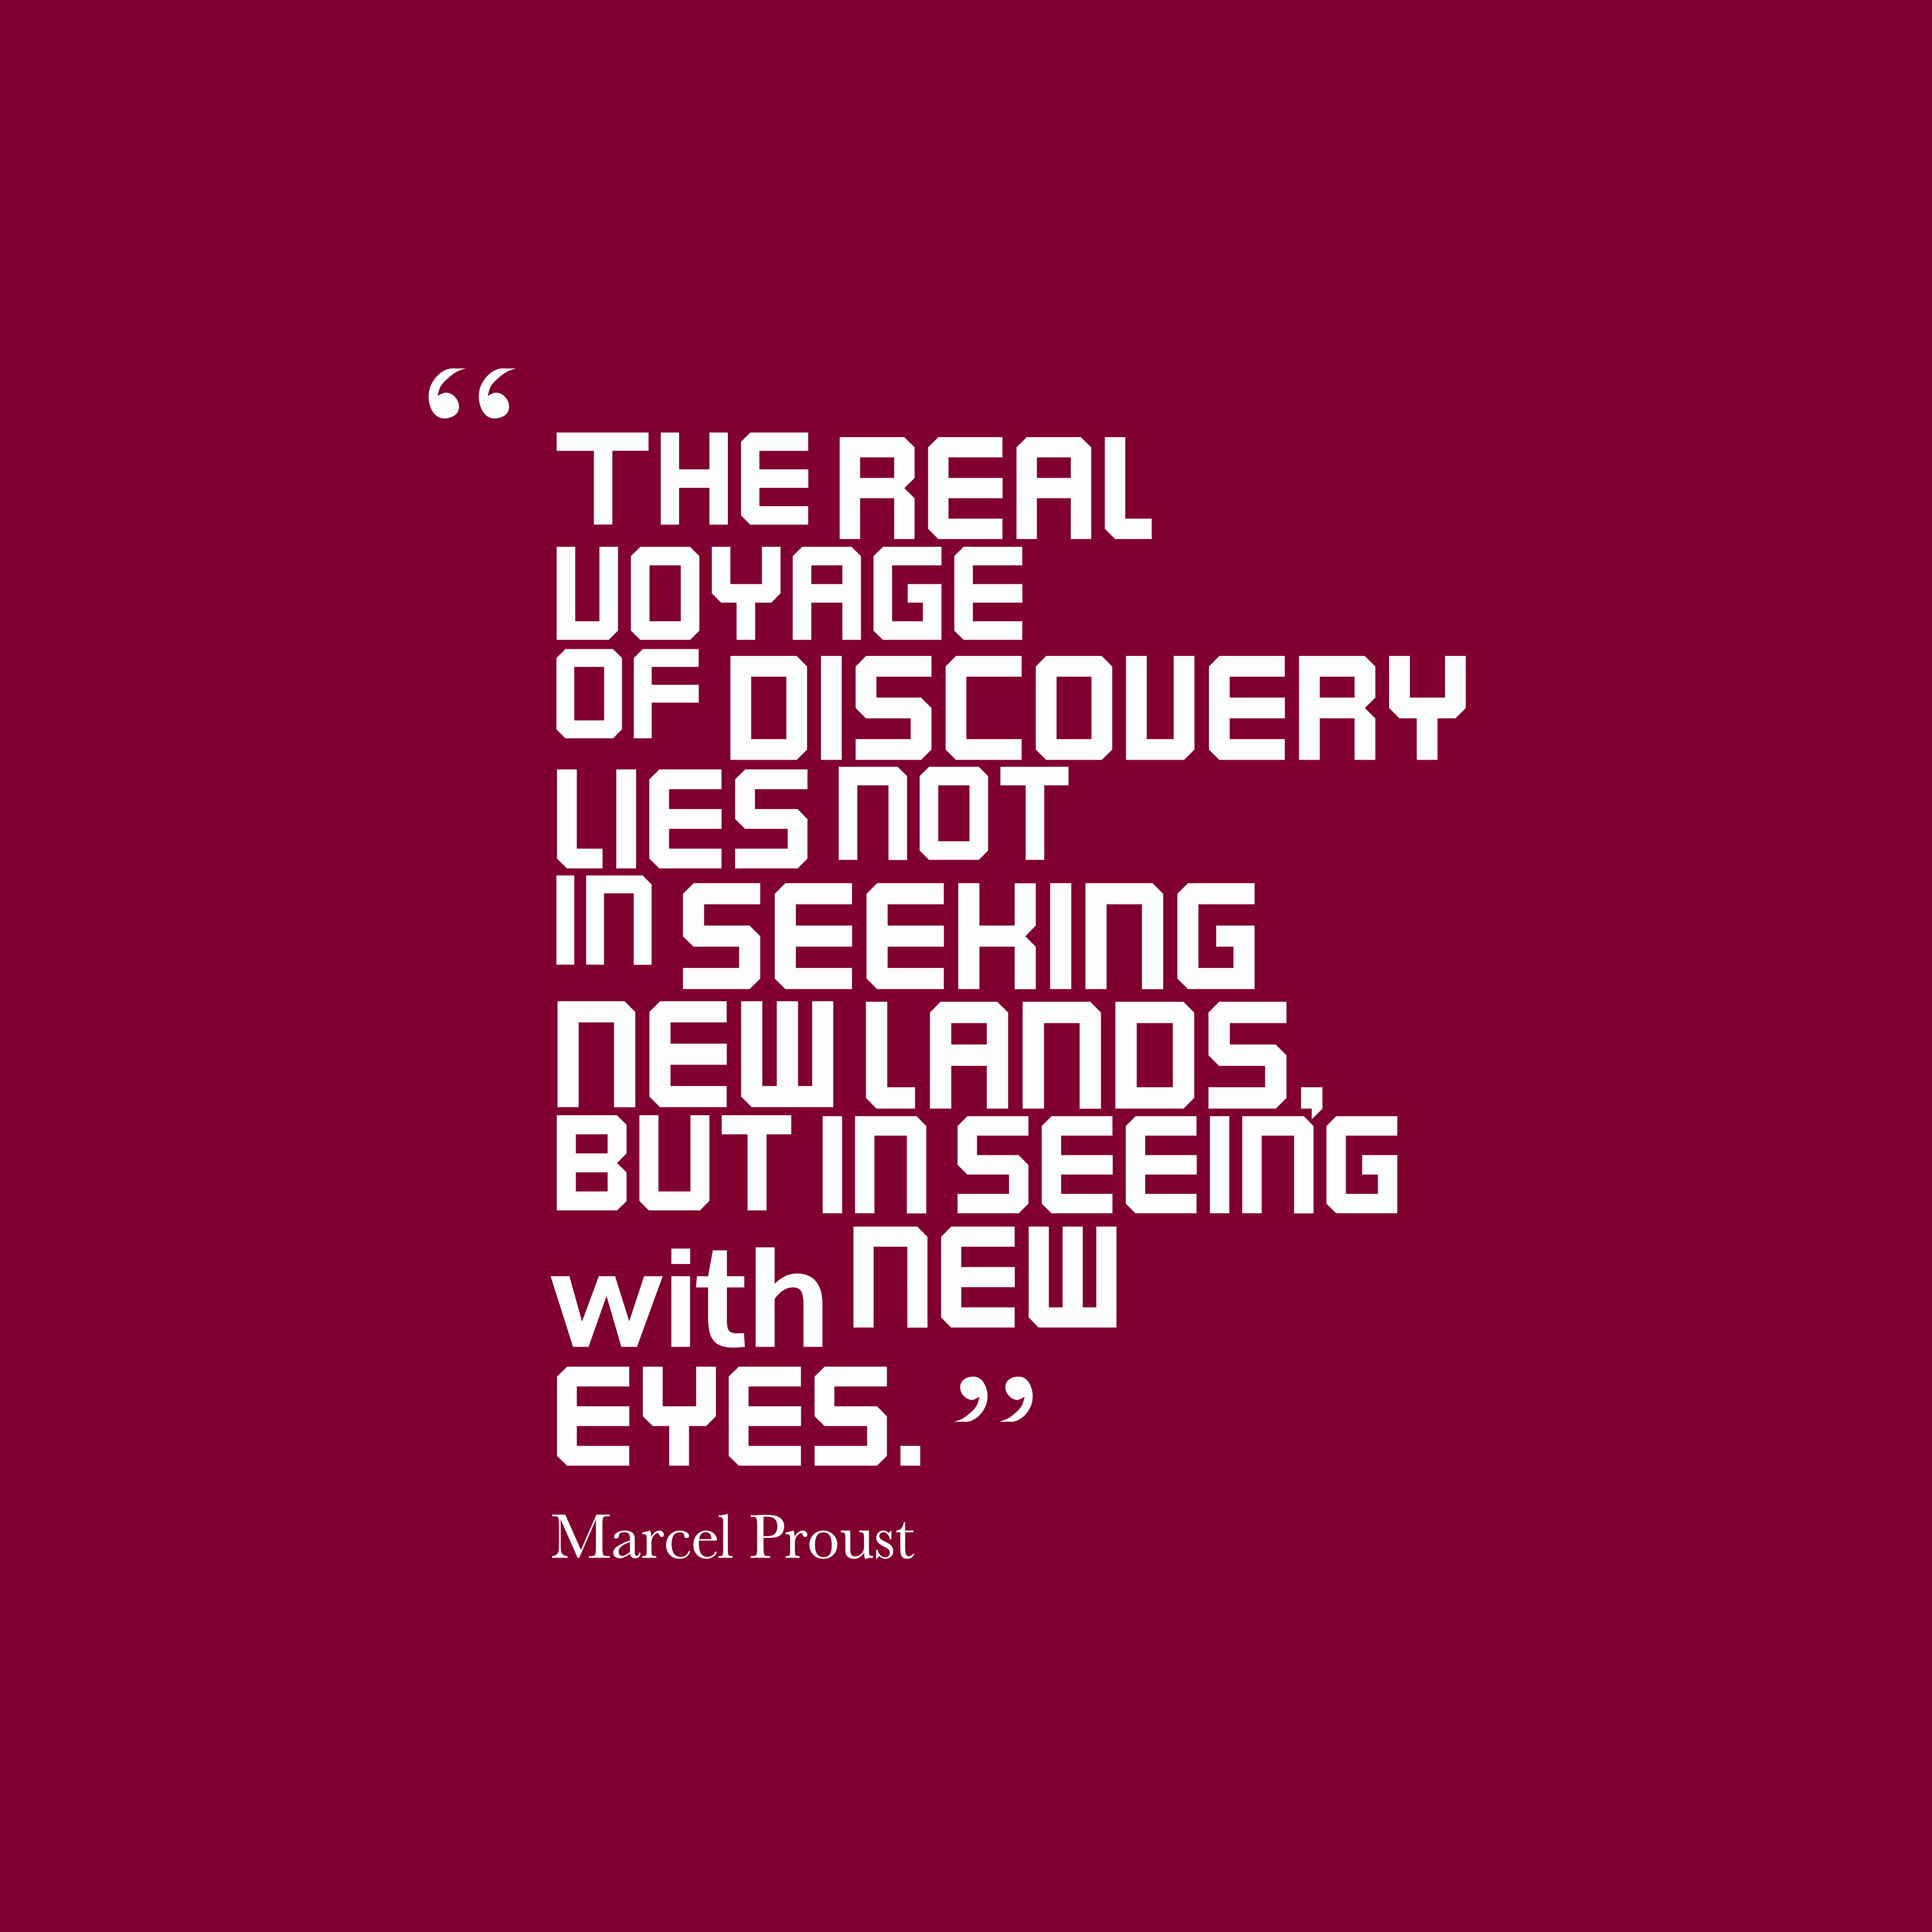 Quotes image of The real voyage of discovery lies not in seeking new lands, but in seeing with new eyes.